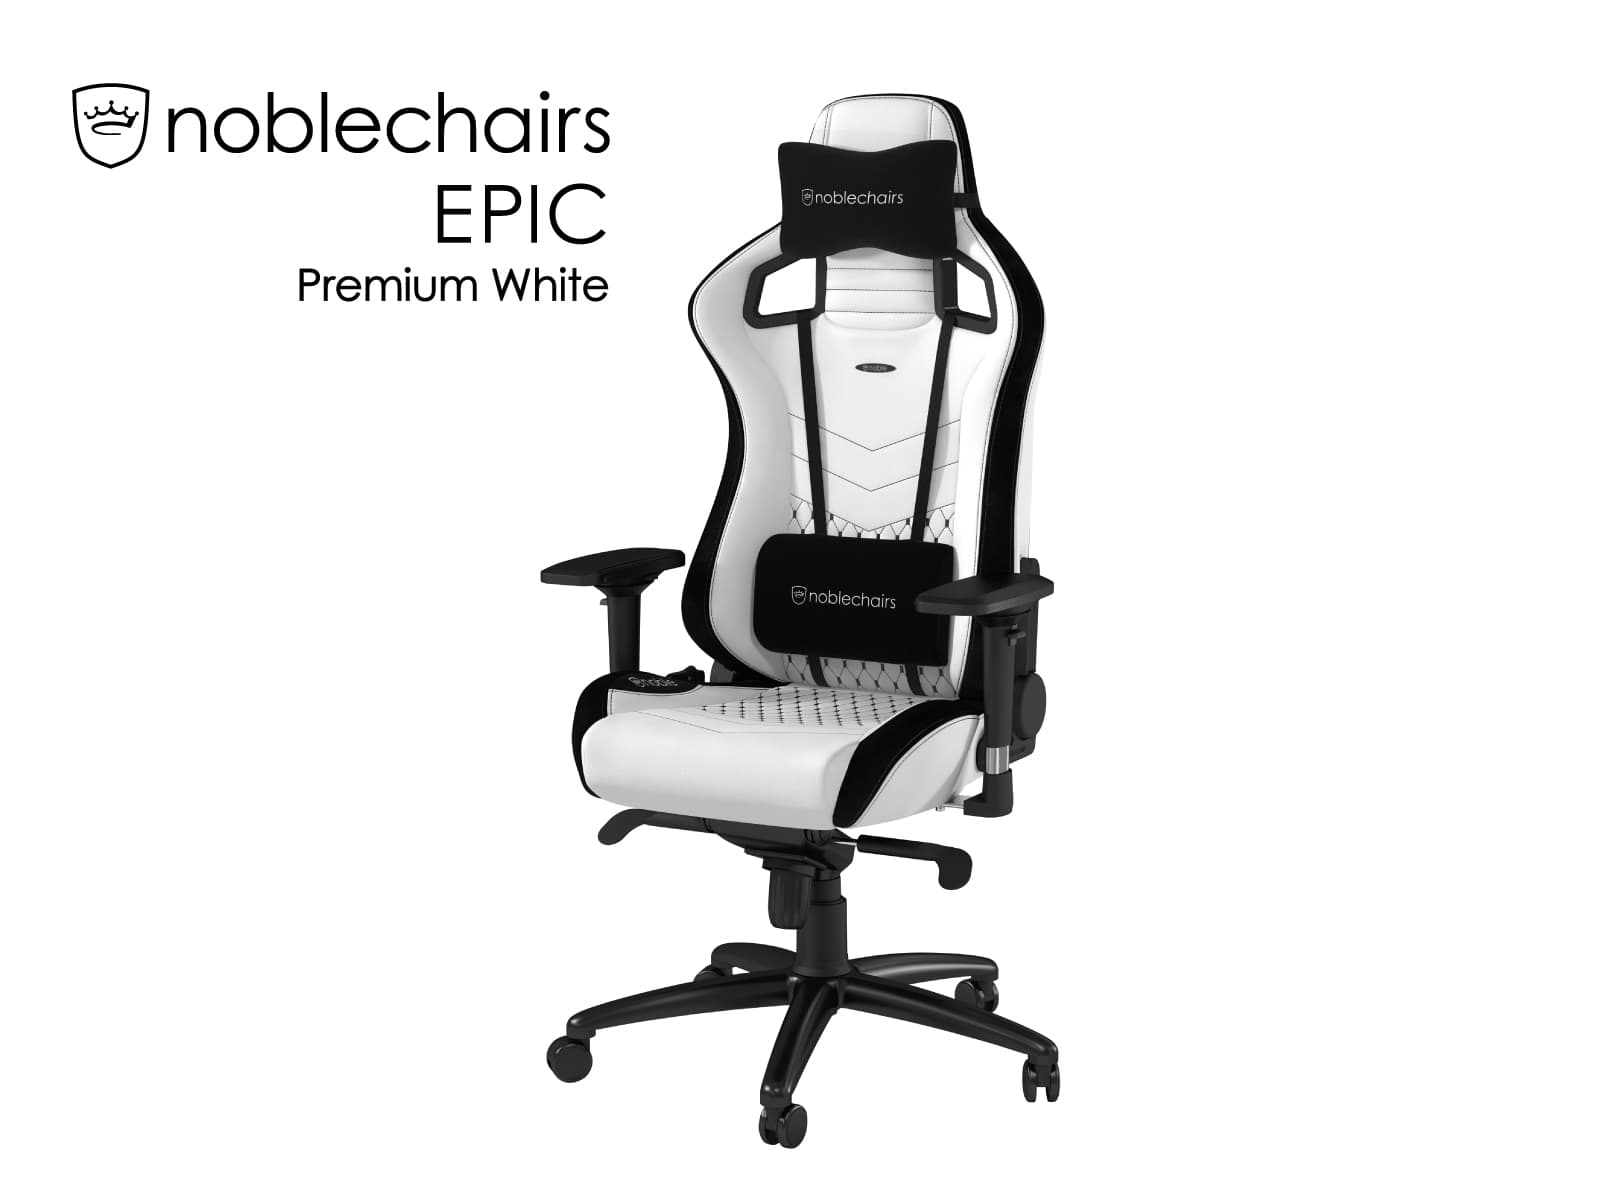 noblechairs-EPIC-WH-58